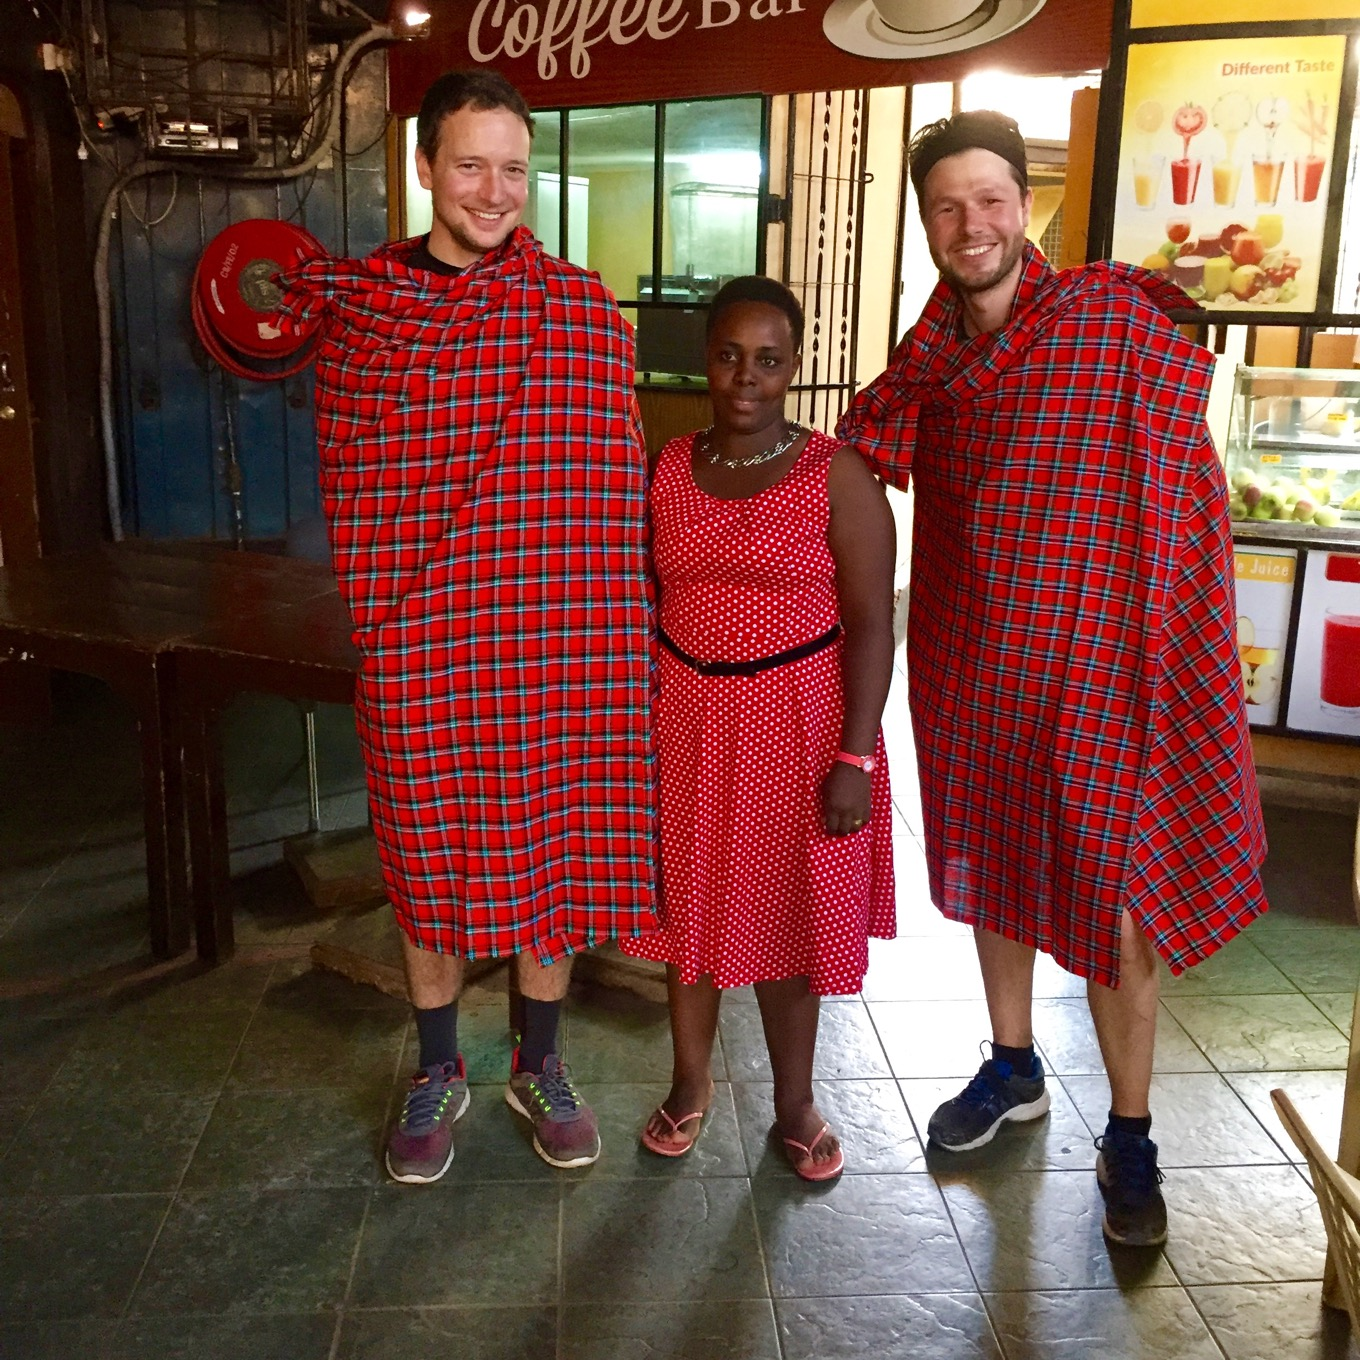 Masai ceremonial robes as present as souvenir